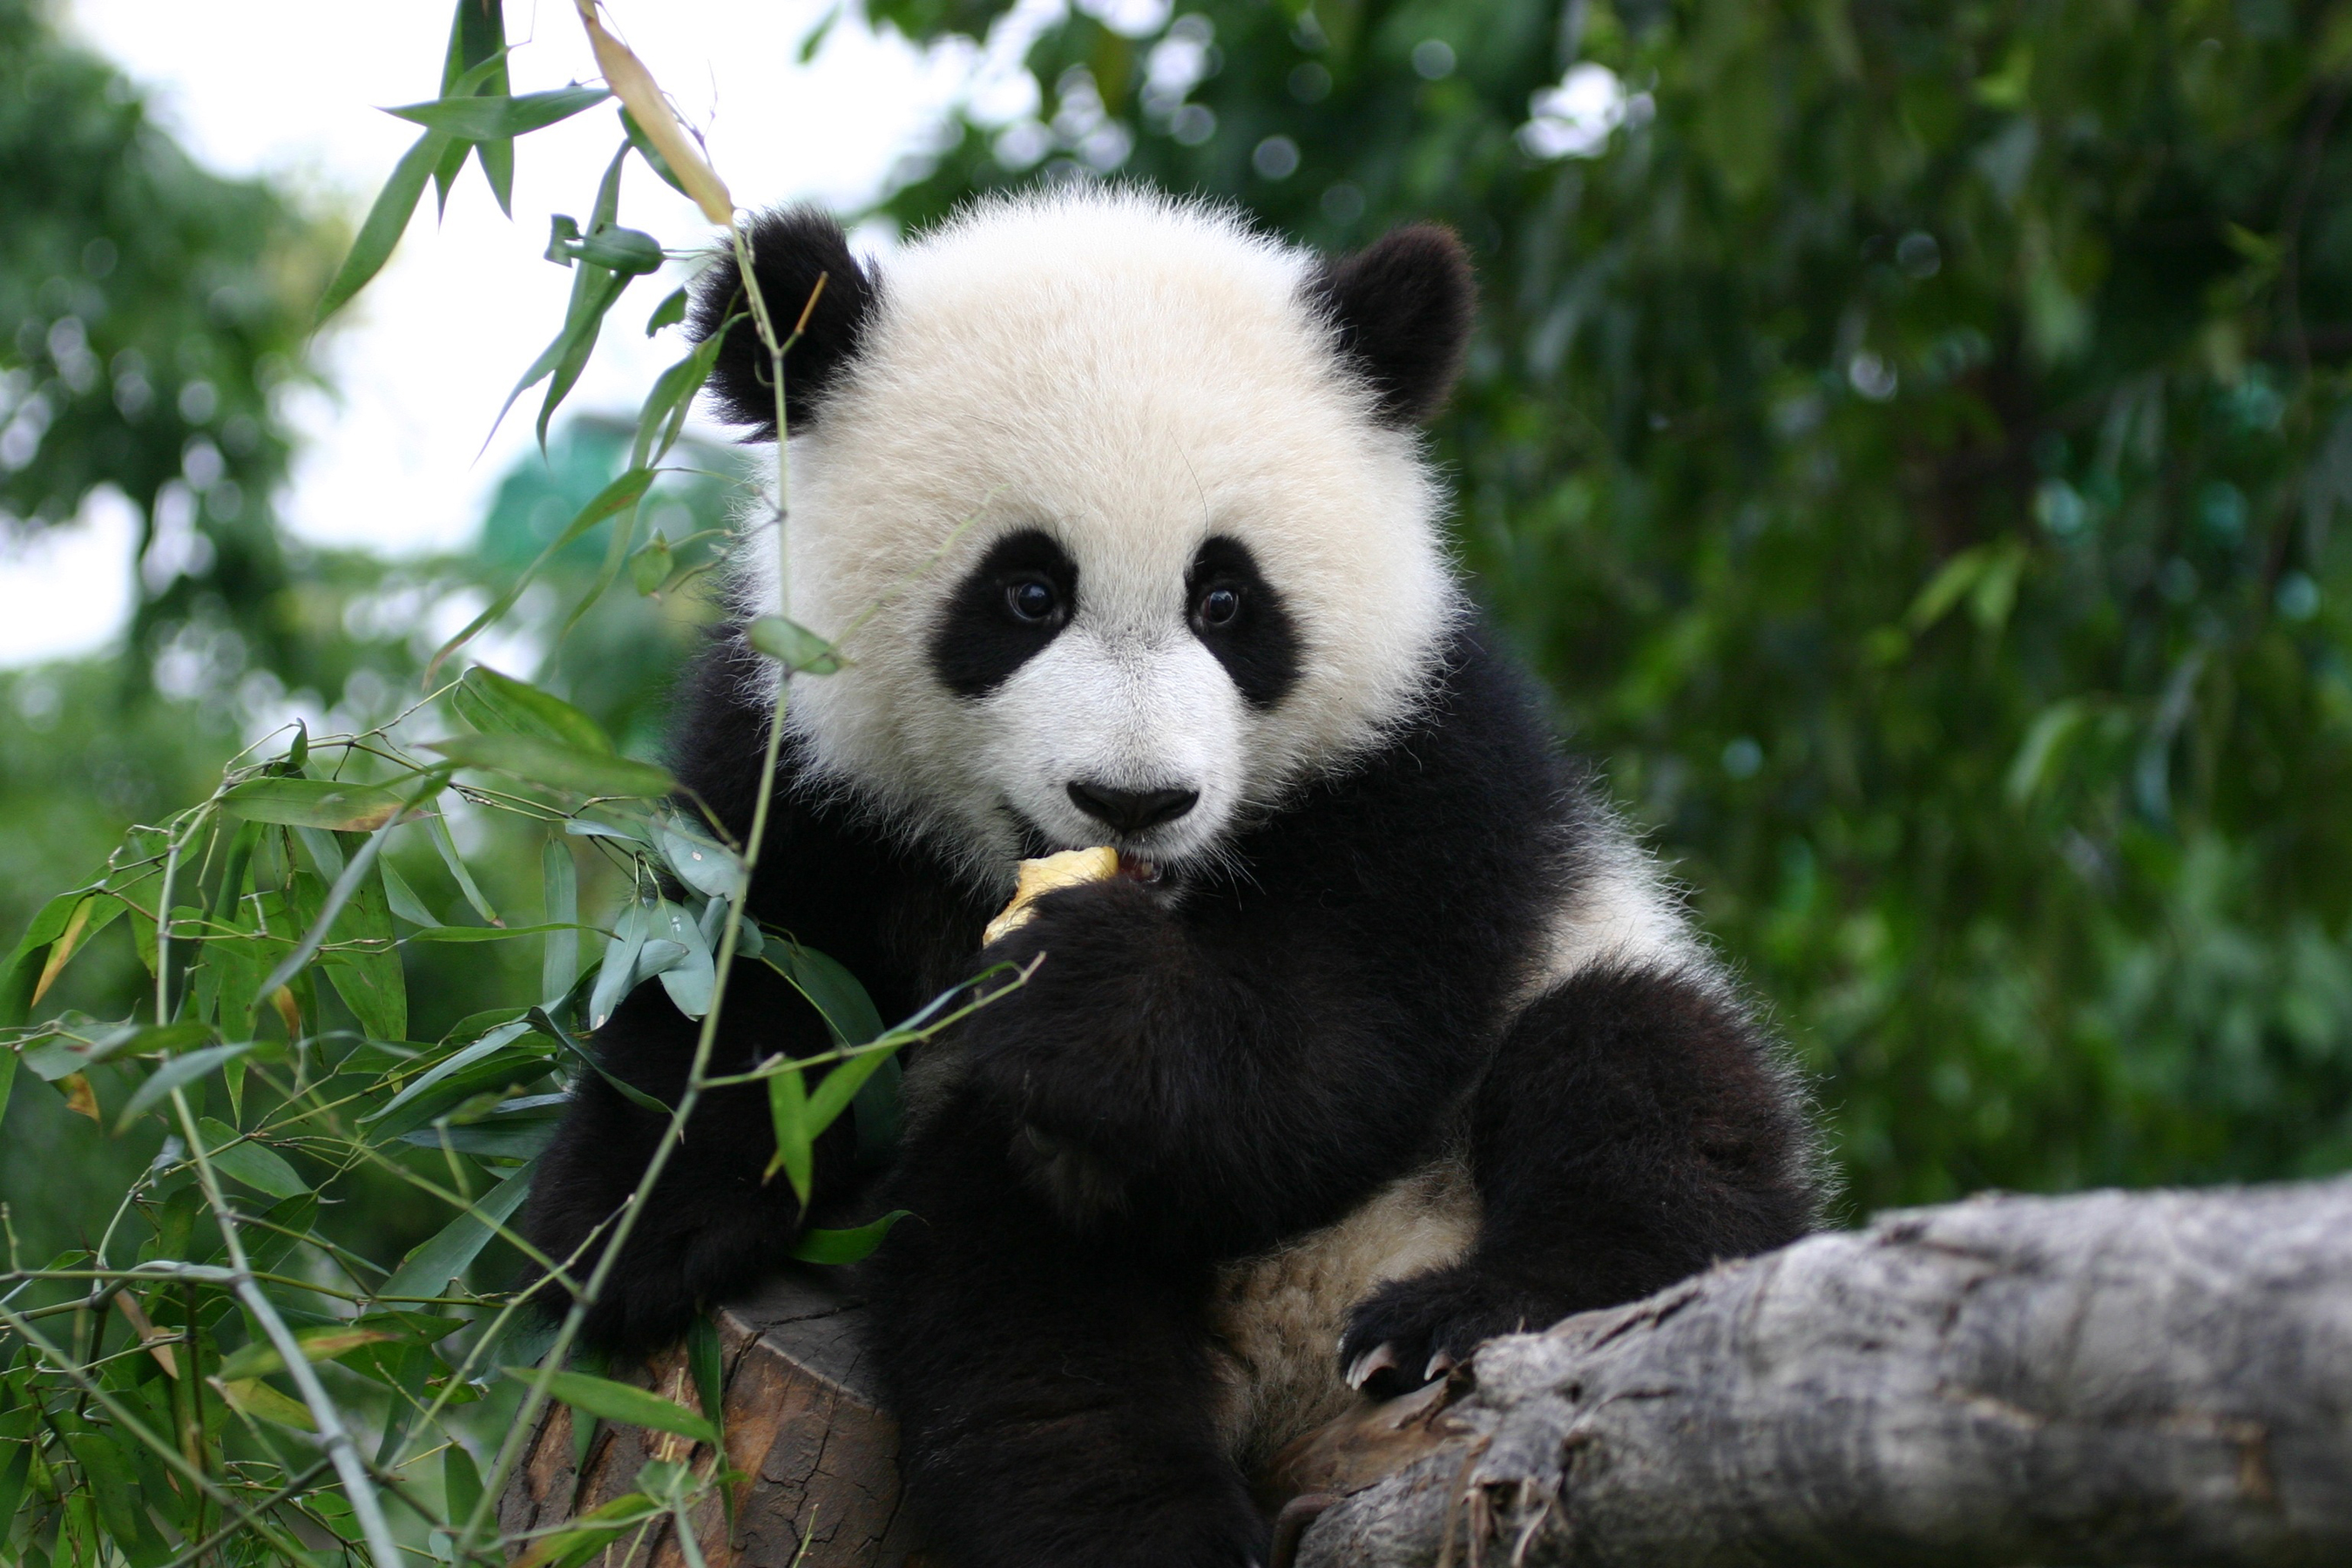 Giant panda and the Bamboo    pgcps mess - Reform Sasscer without